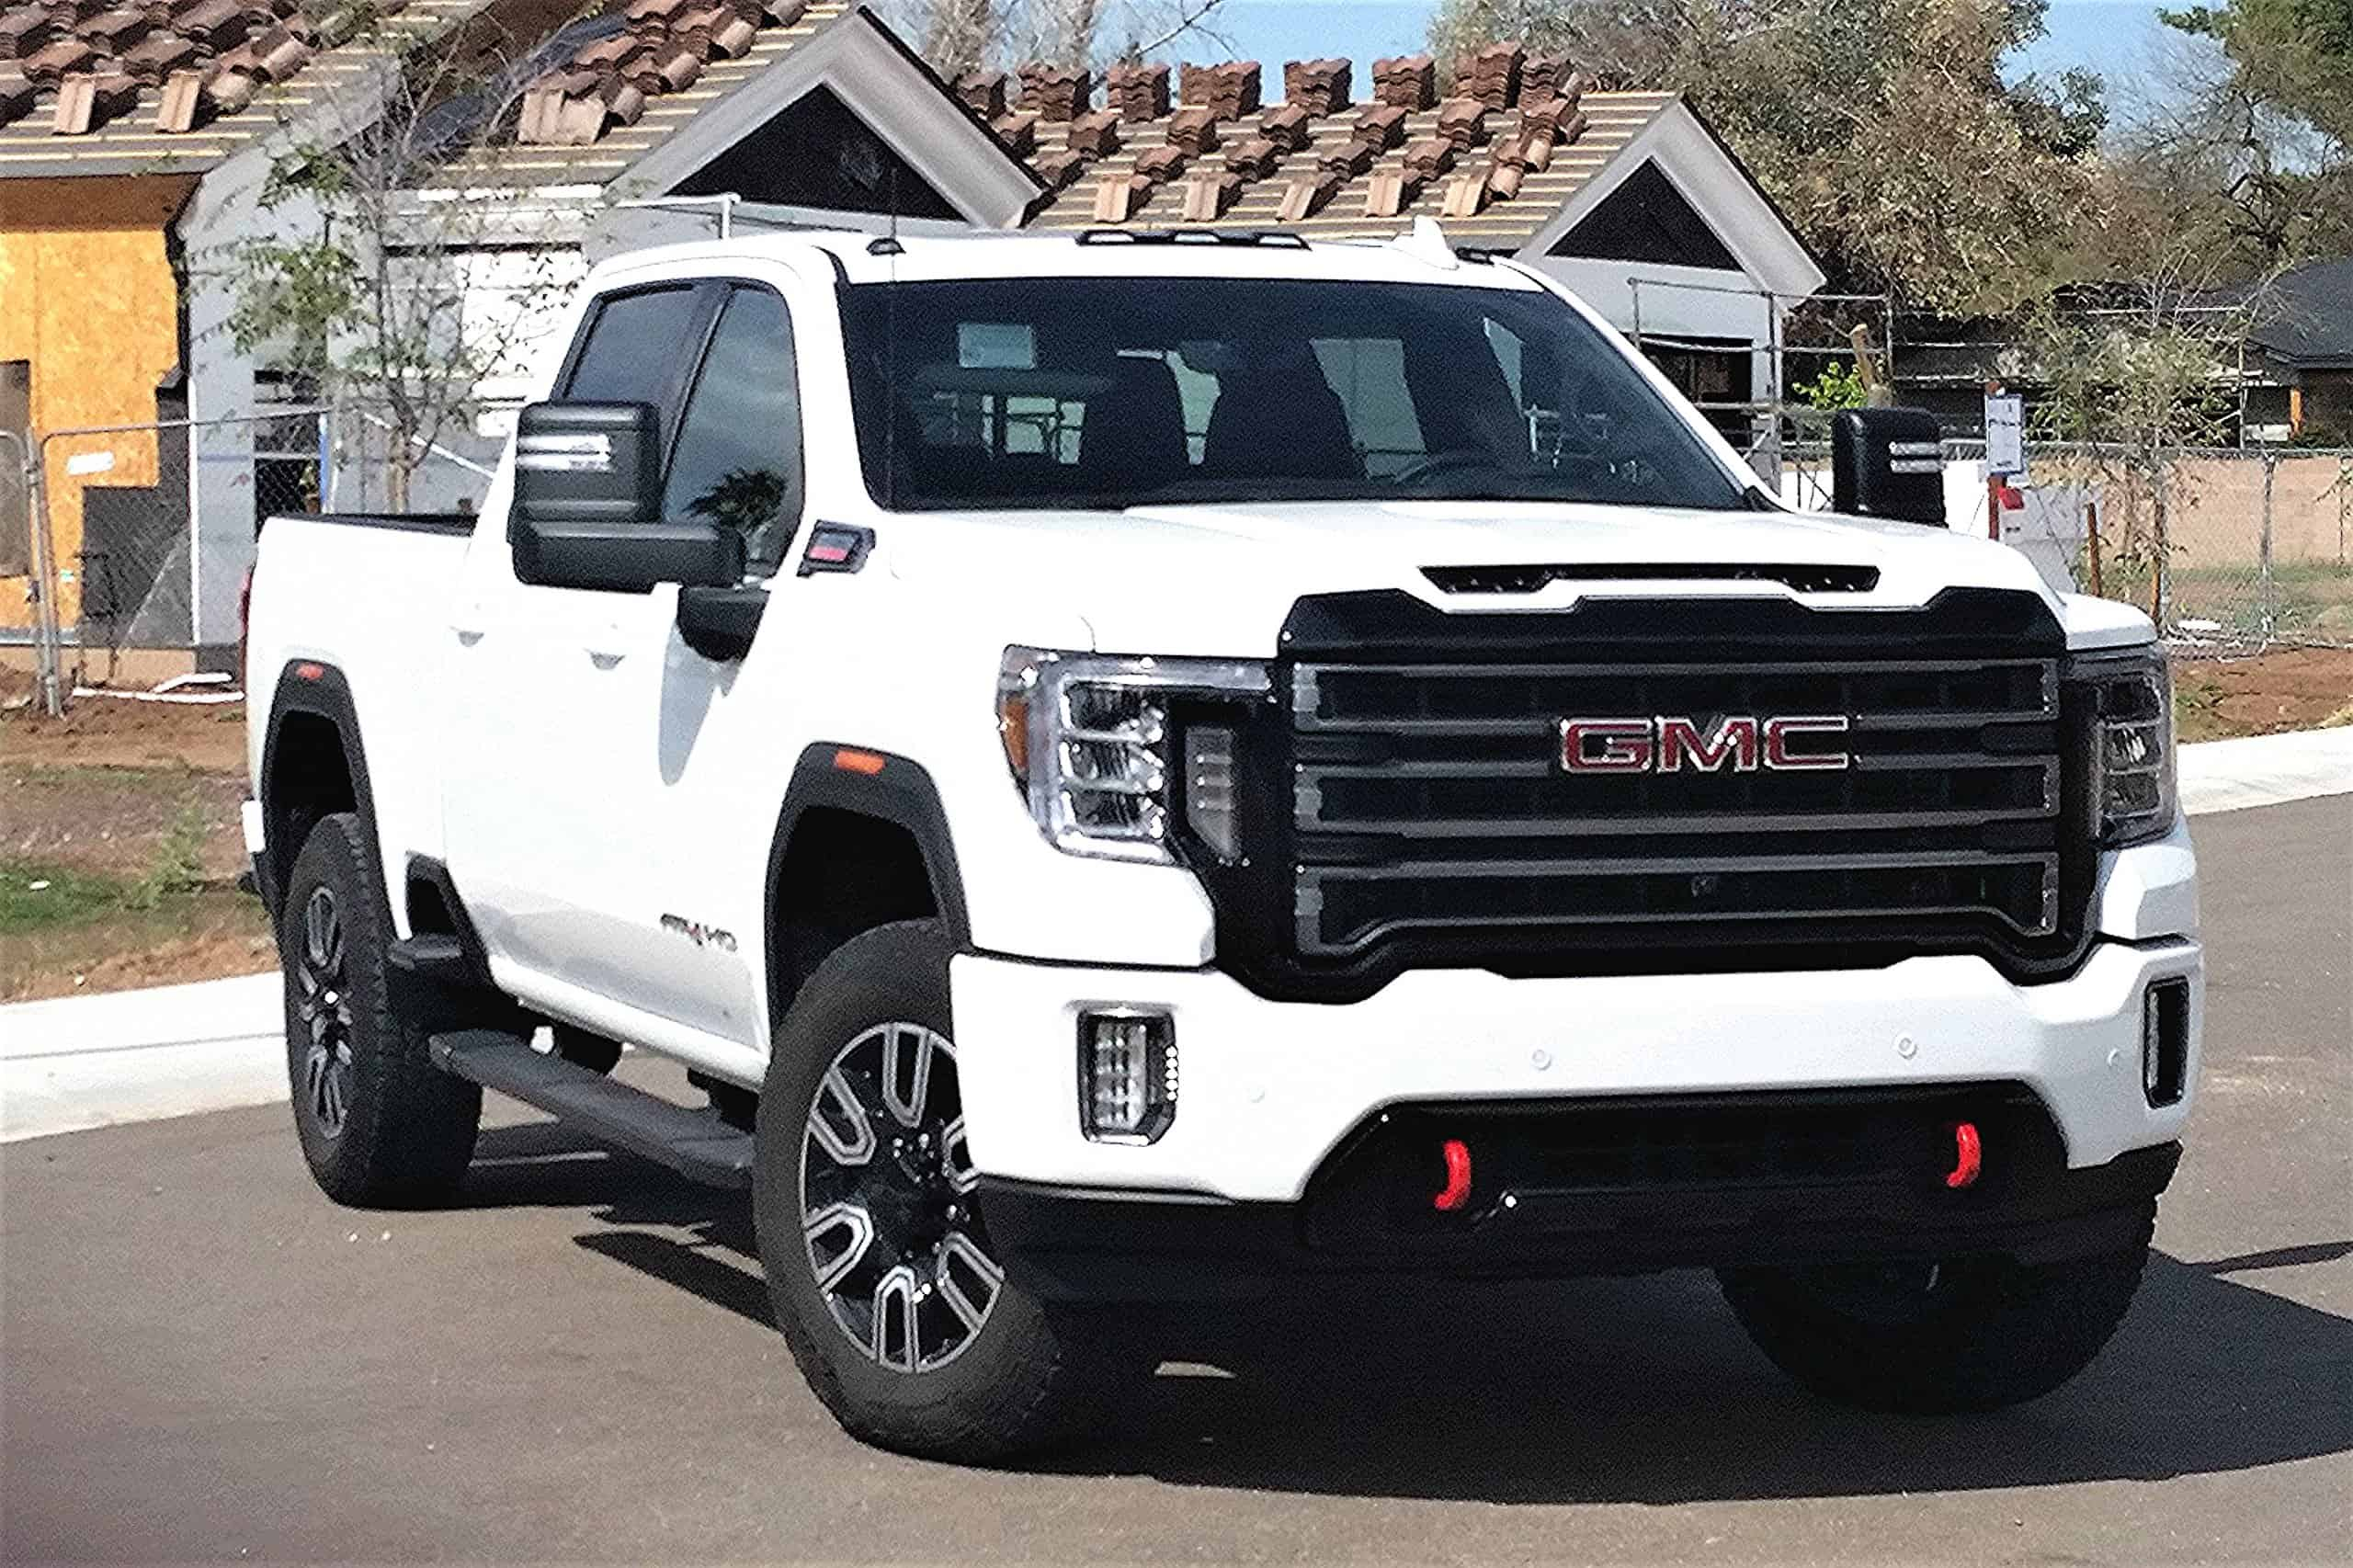 Massive 2020 Gmc Sierra 2500 Hd Gets At4 Off Road Gear